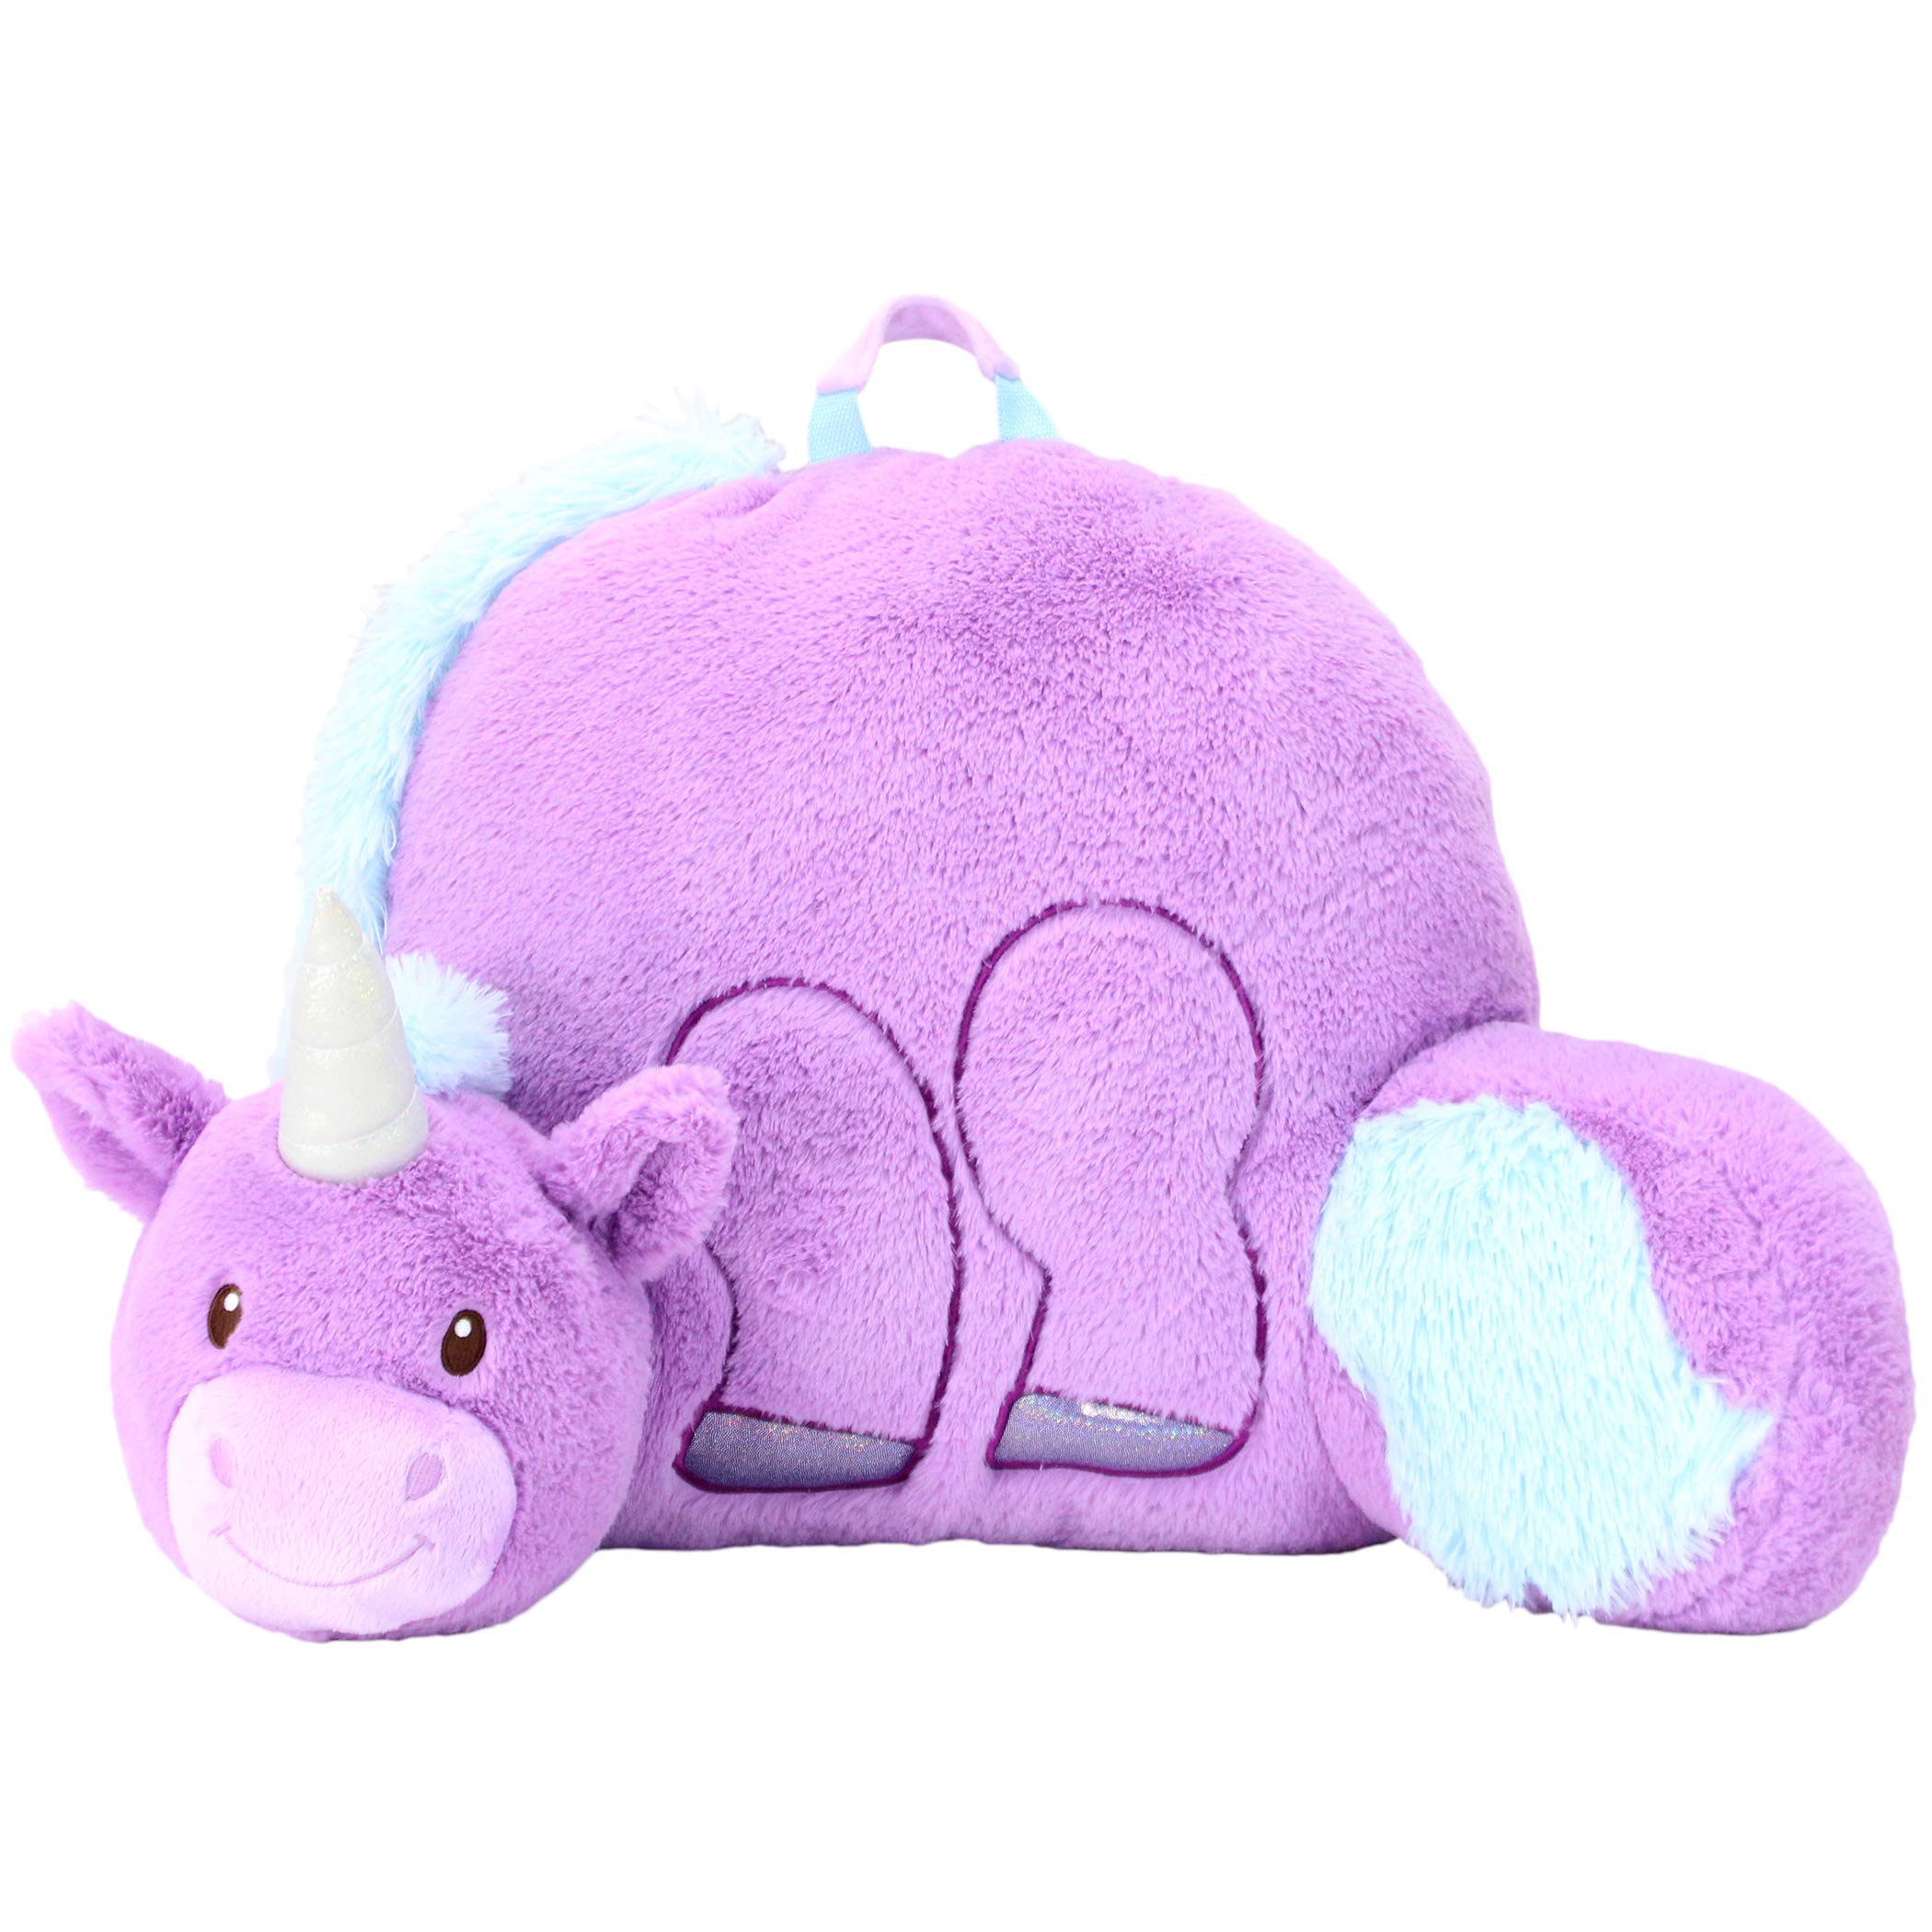 Sweet Seats Animal Adventure UnicornReading CushionLightweight & Portable Bed Rest PillowPerfect for Ages 2+